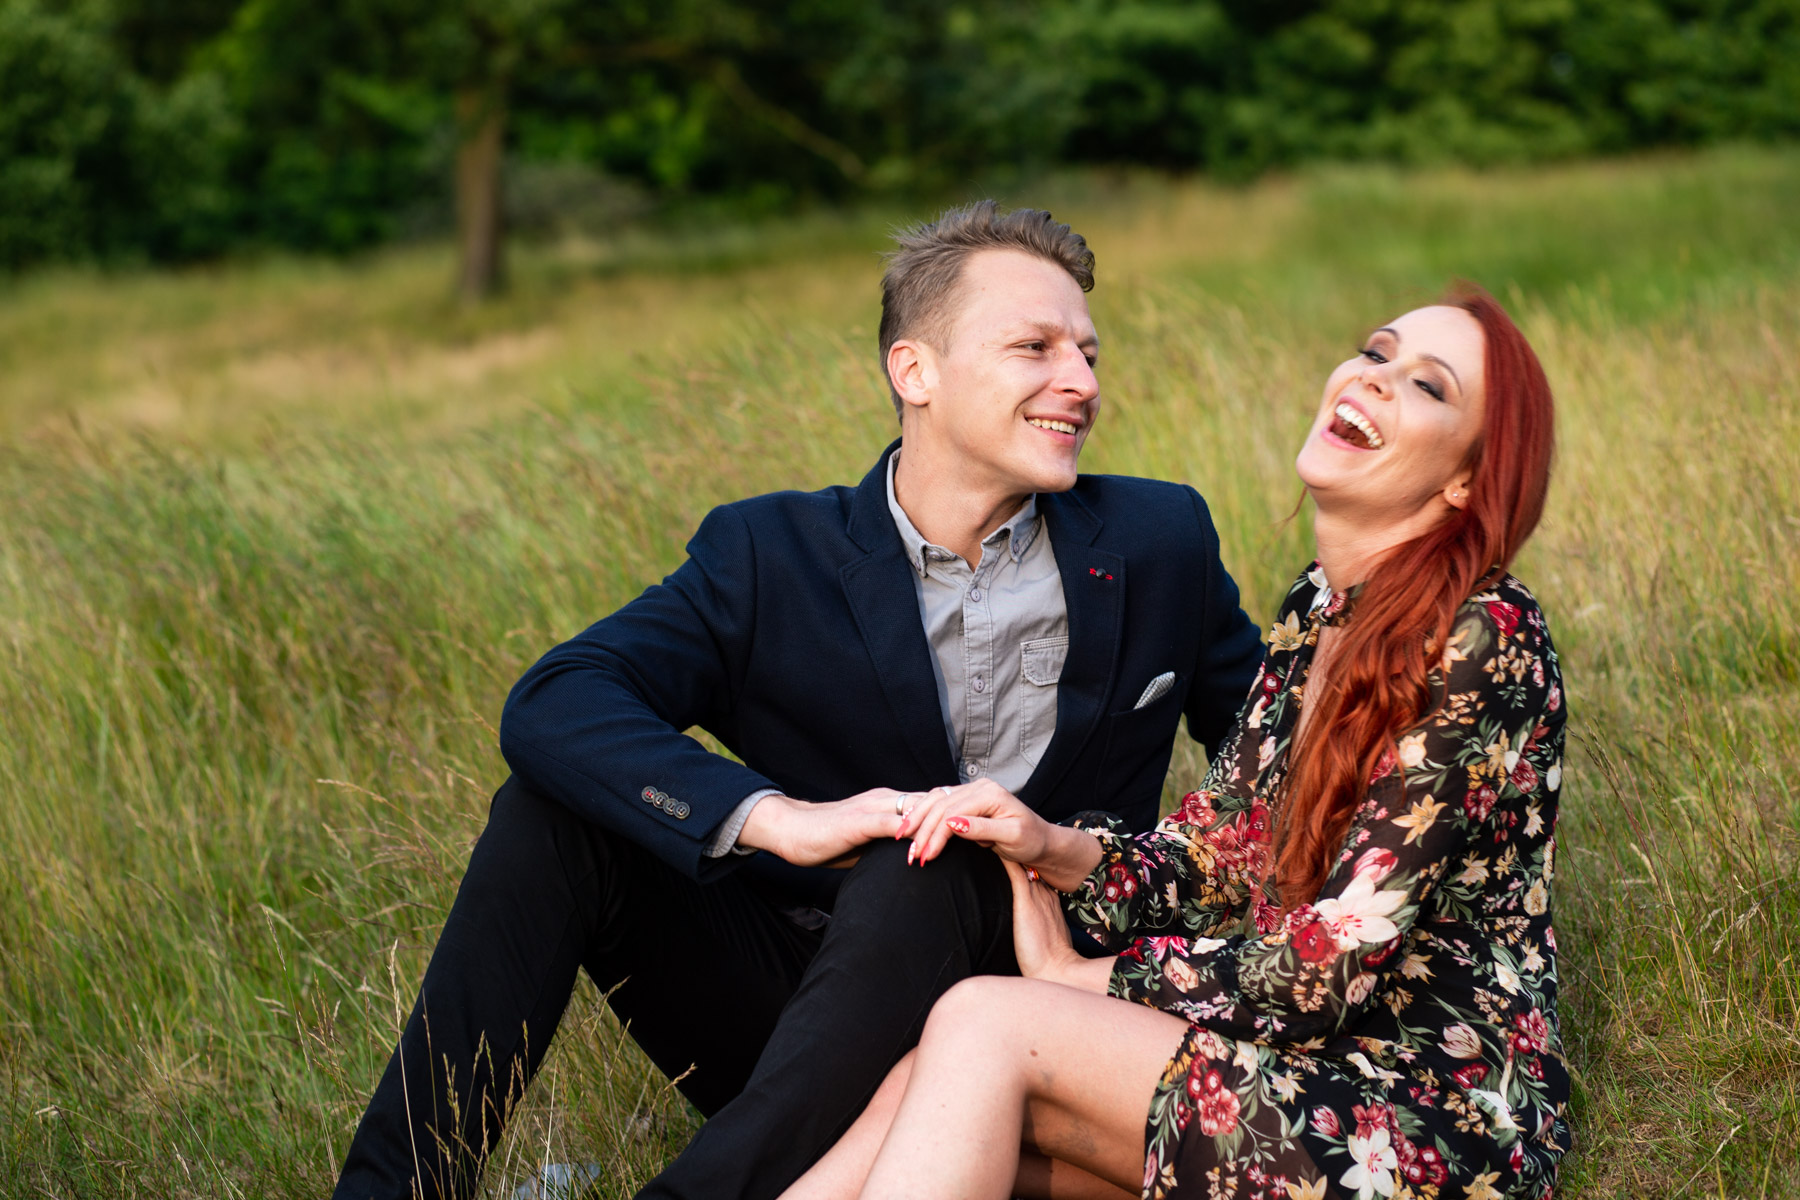 Greenwich Park engagement shoot in London